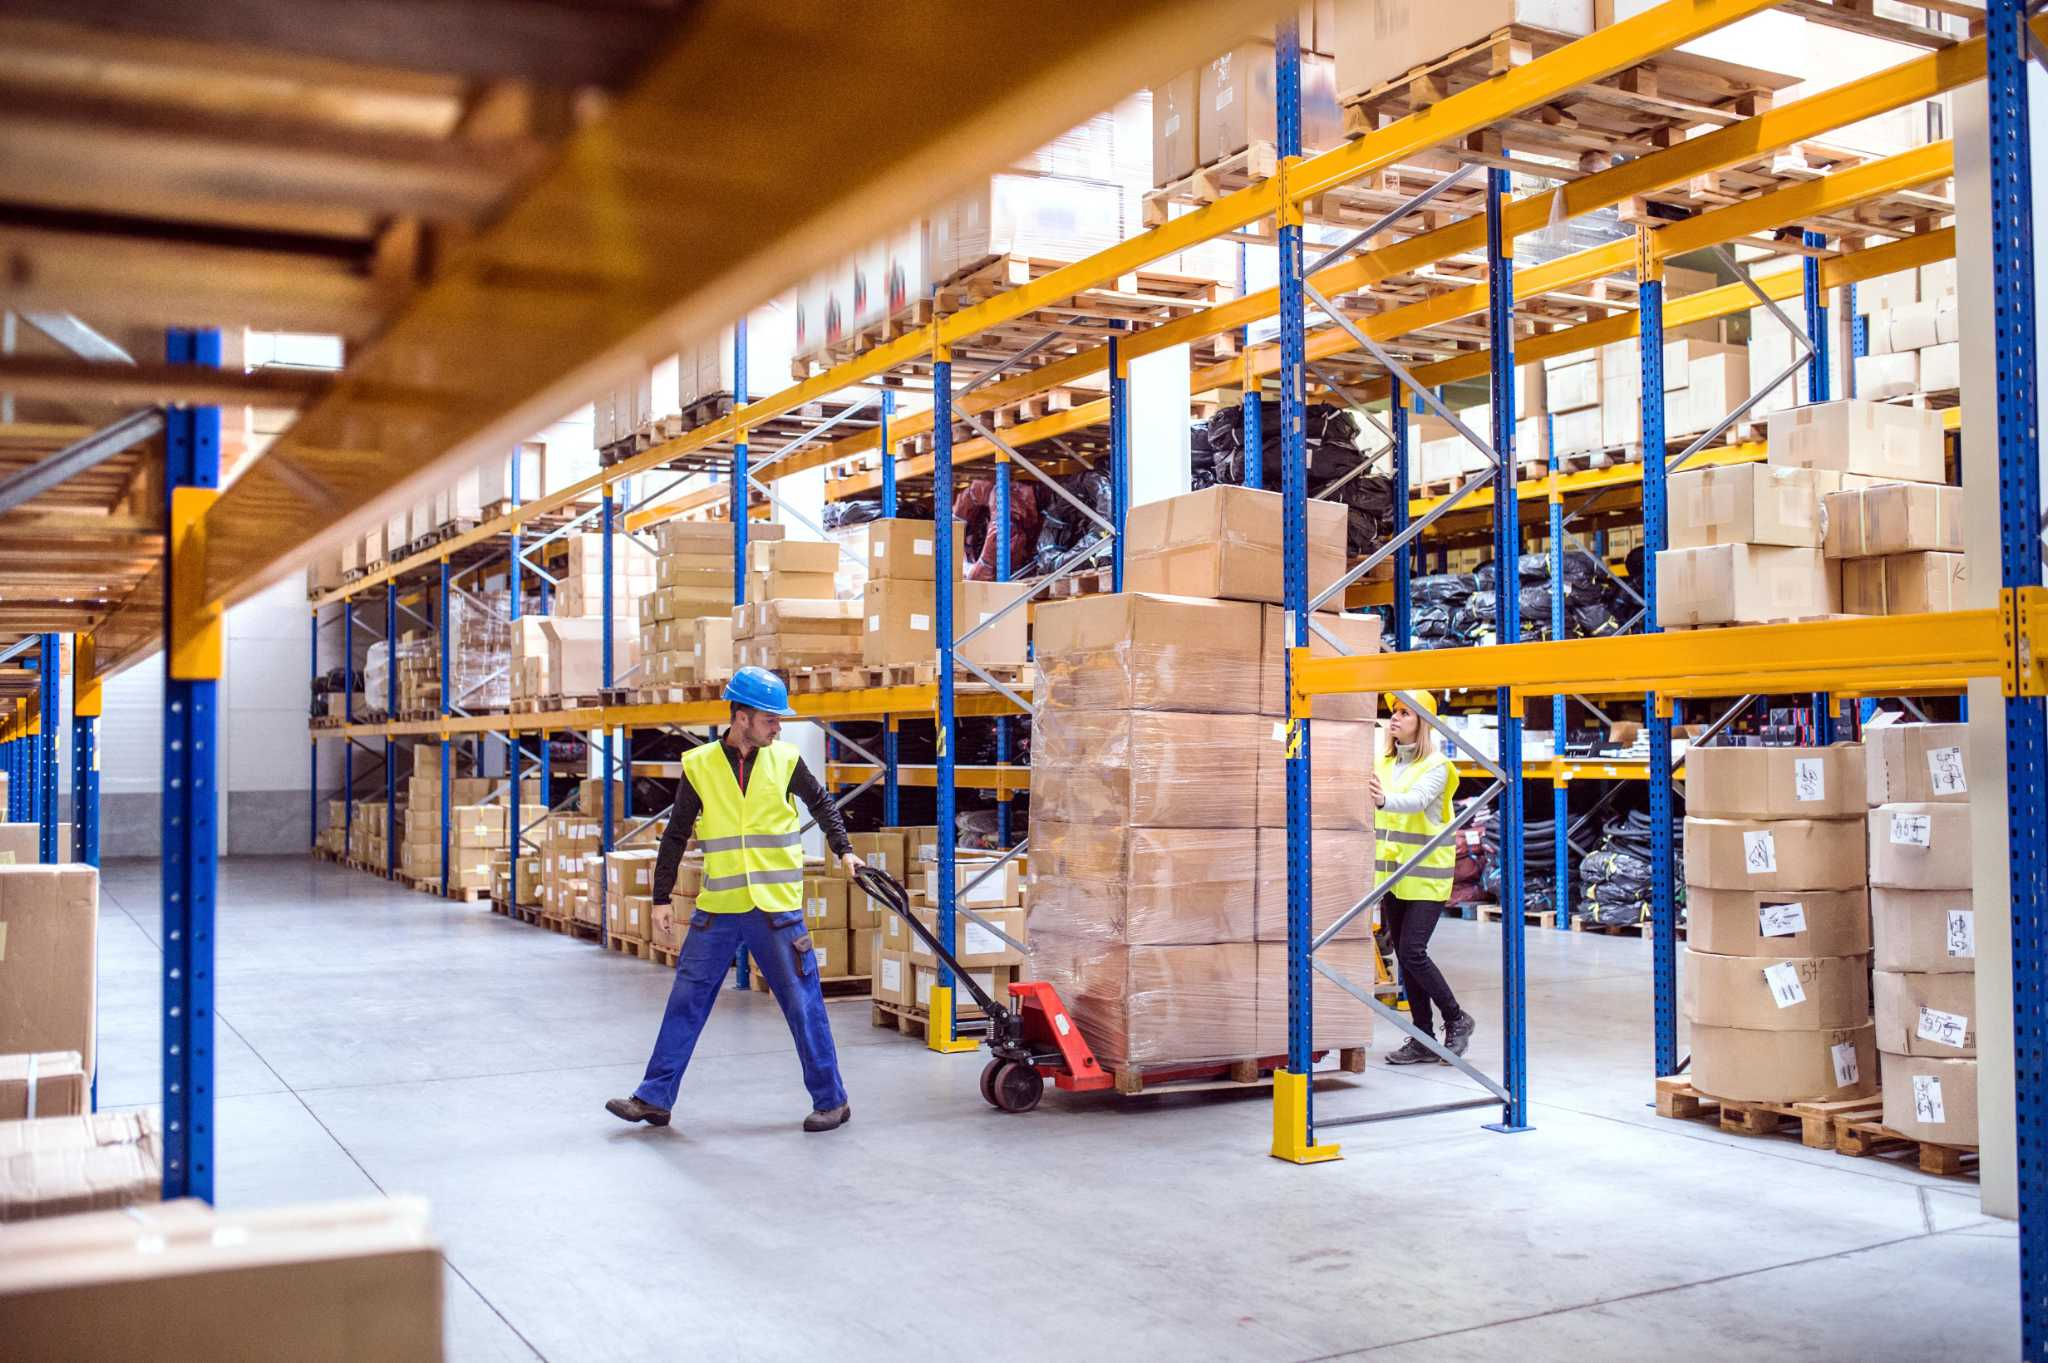 Warehouse workers keep products moving